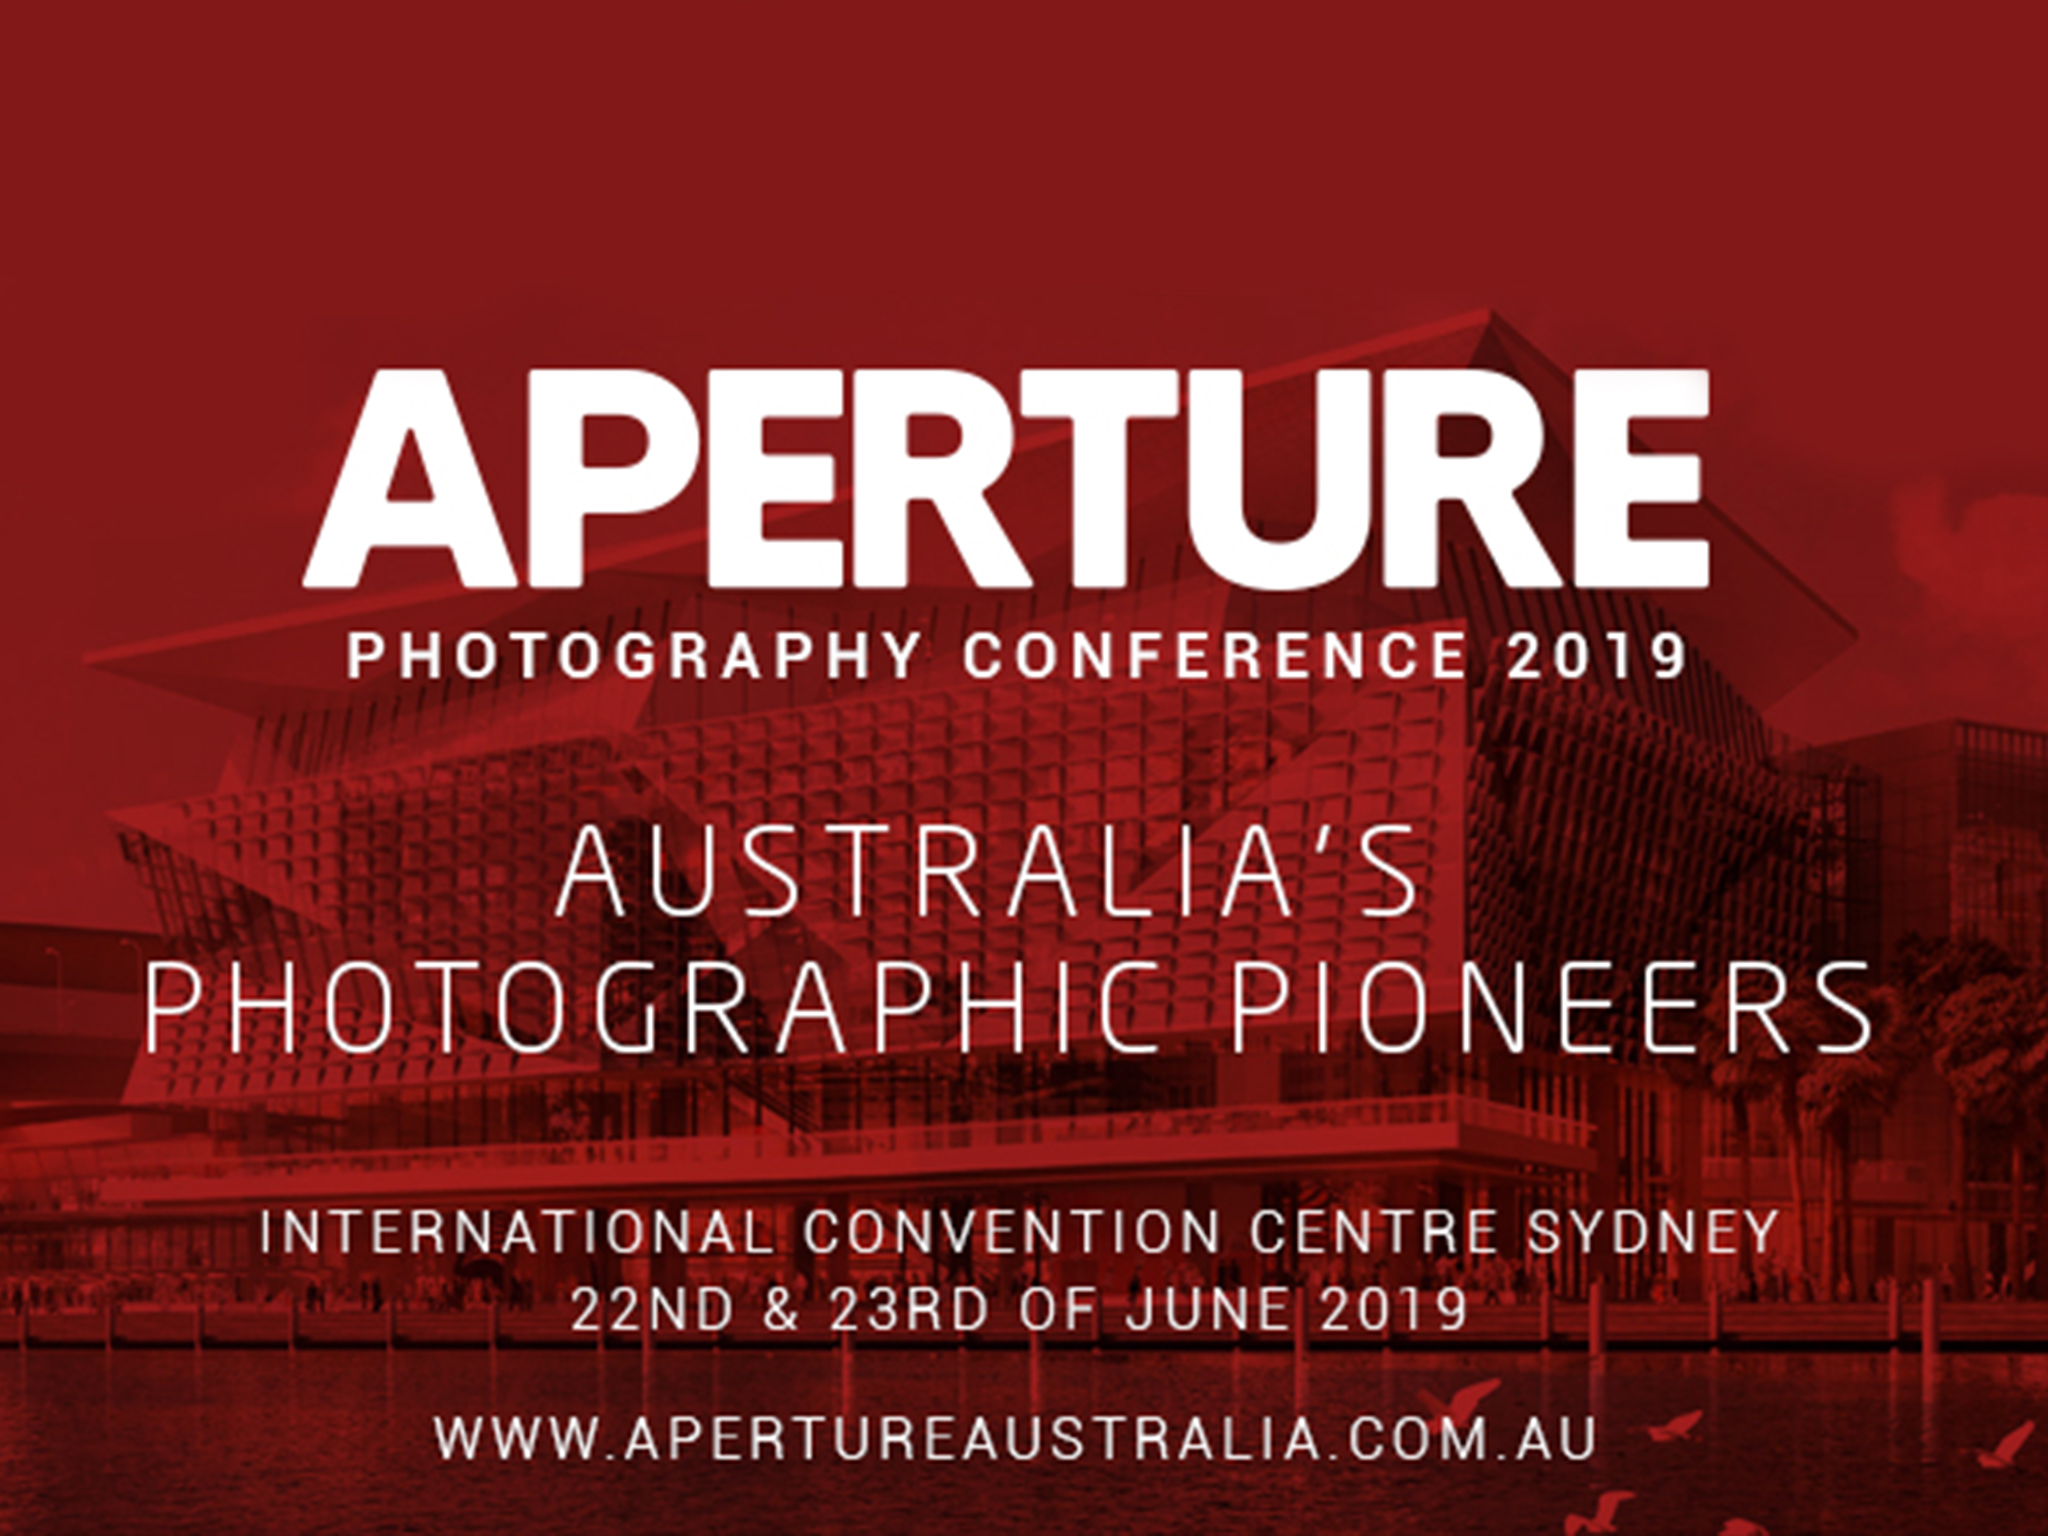 The best Australian photography conference in 2019